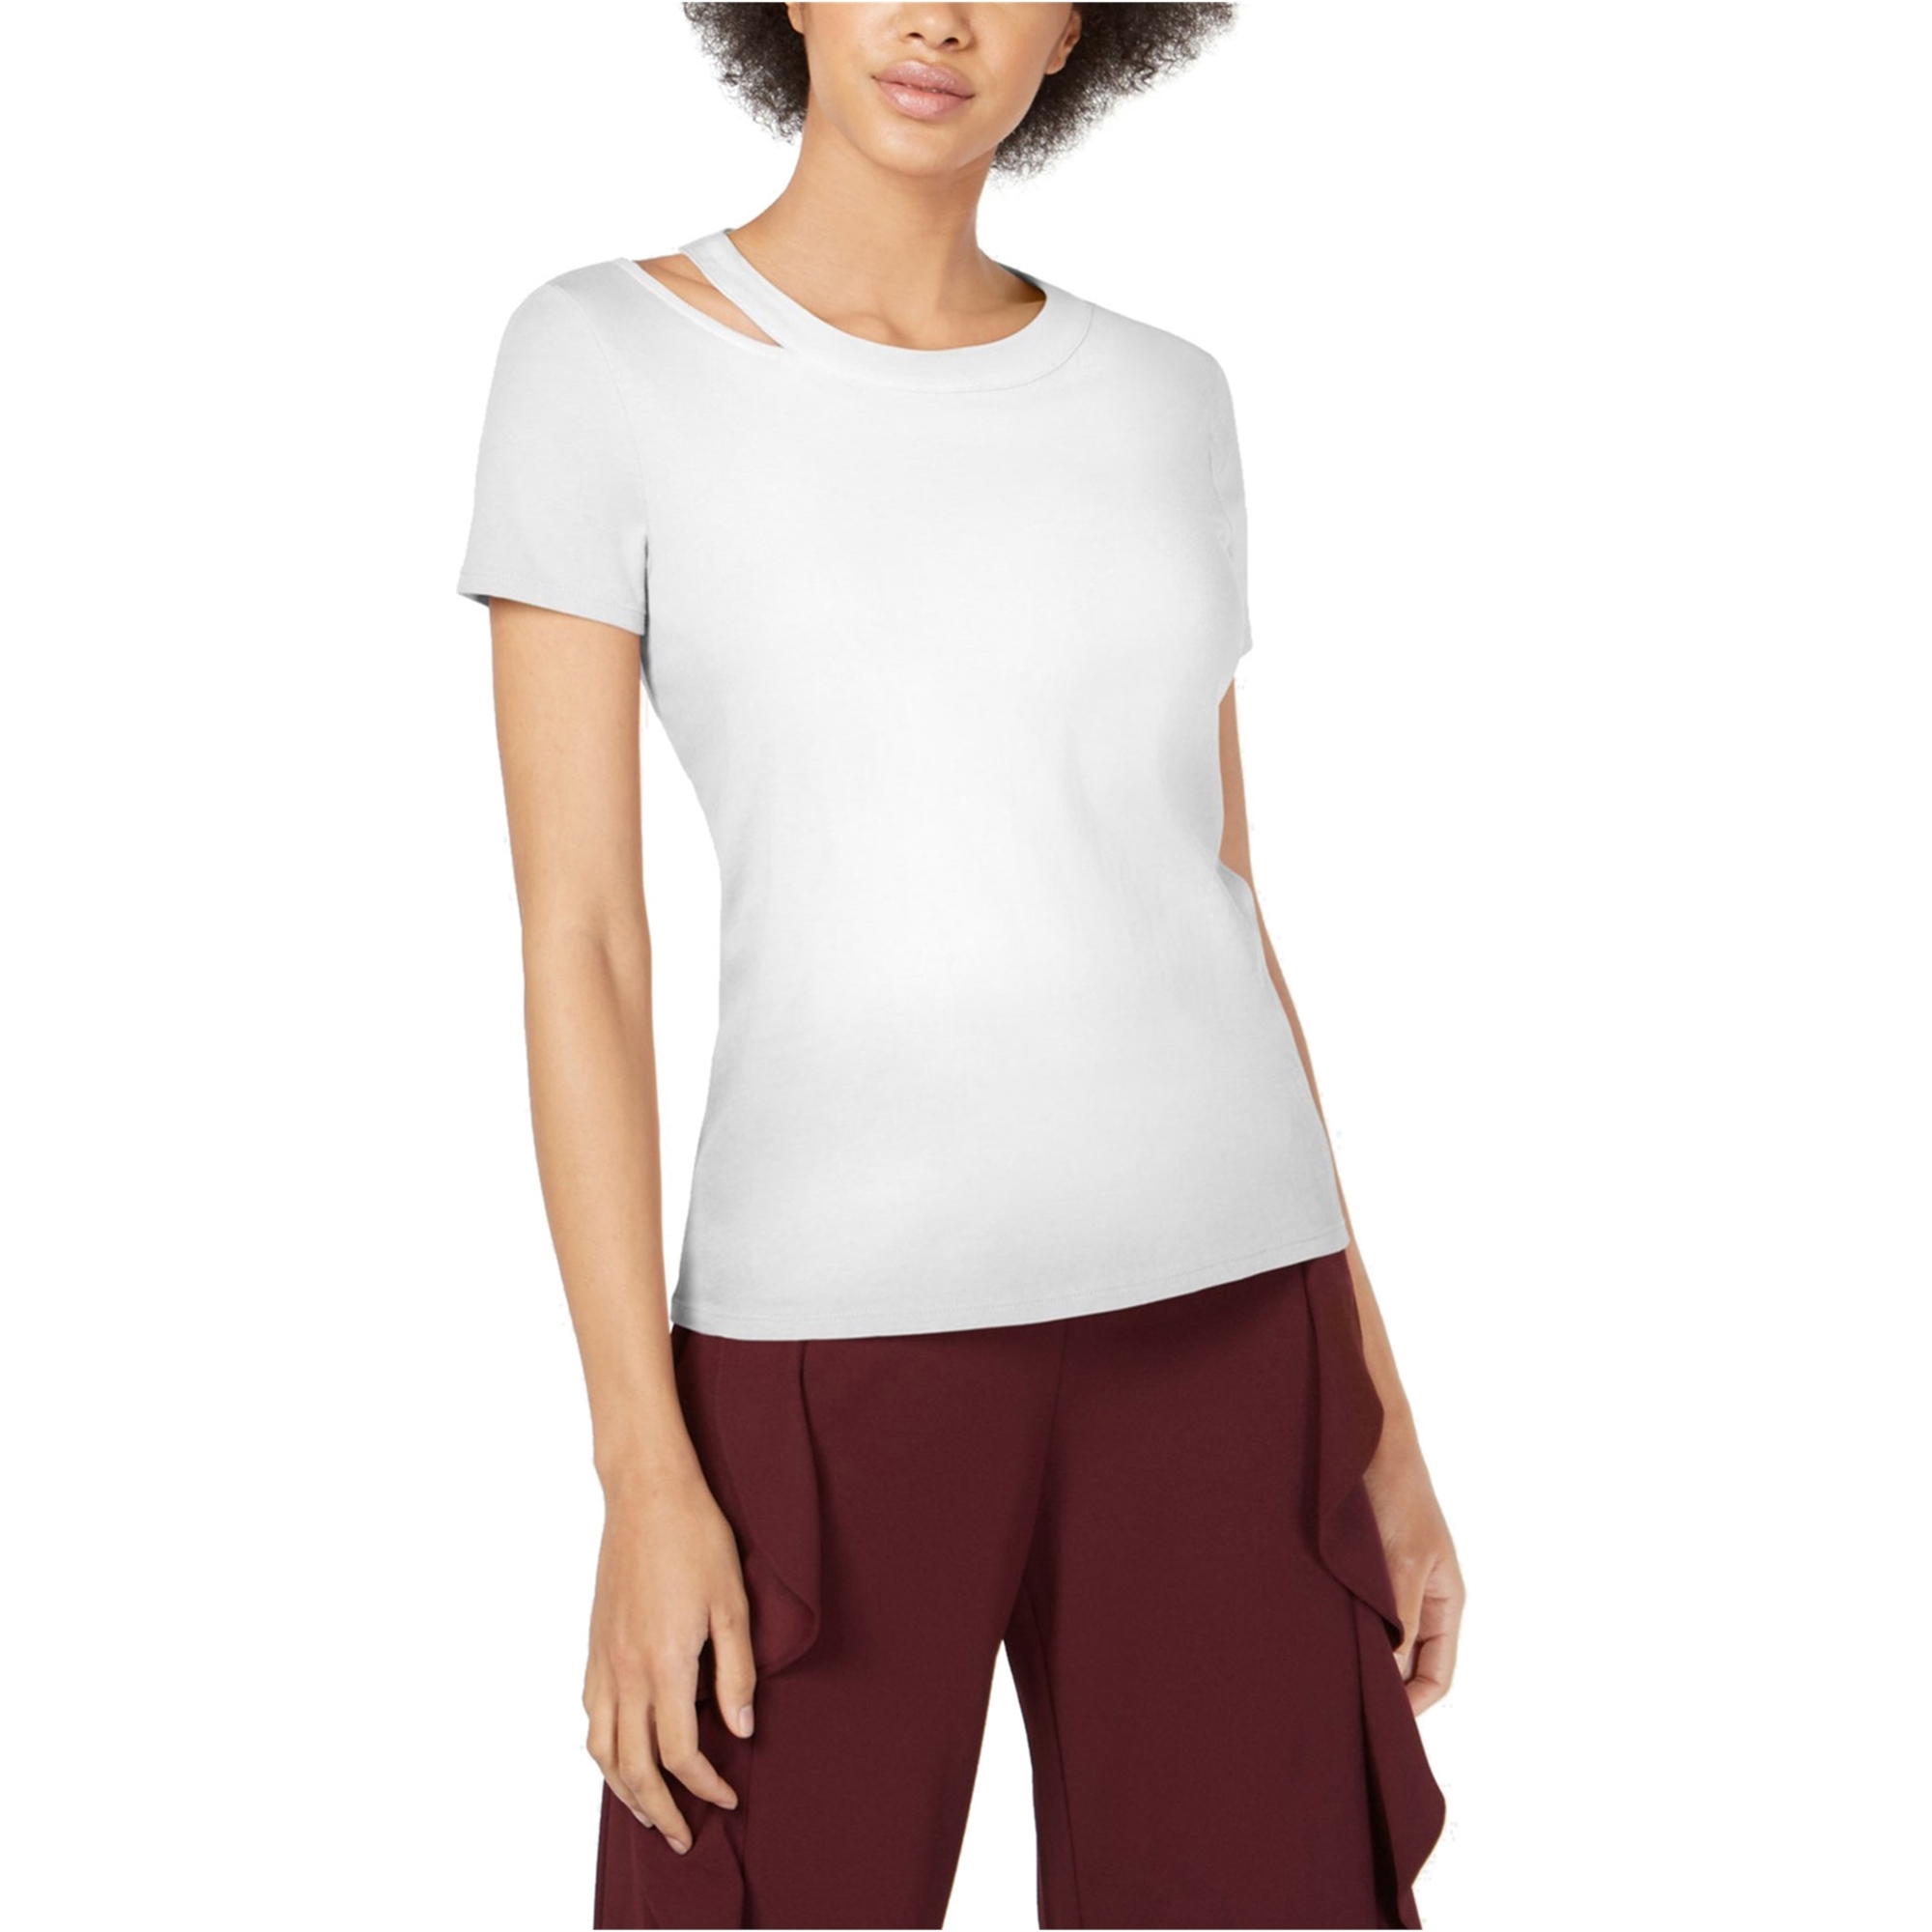 Bar Iii Womens Cutout Basic T-Shirt